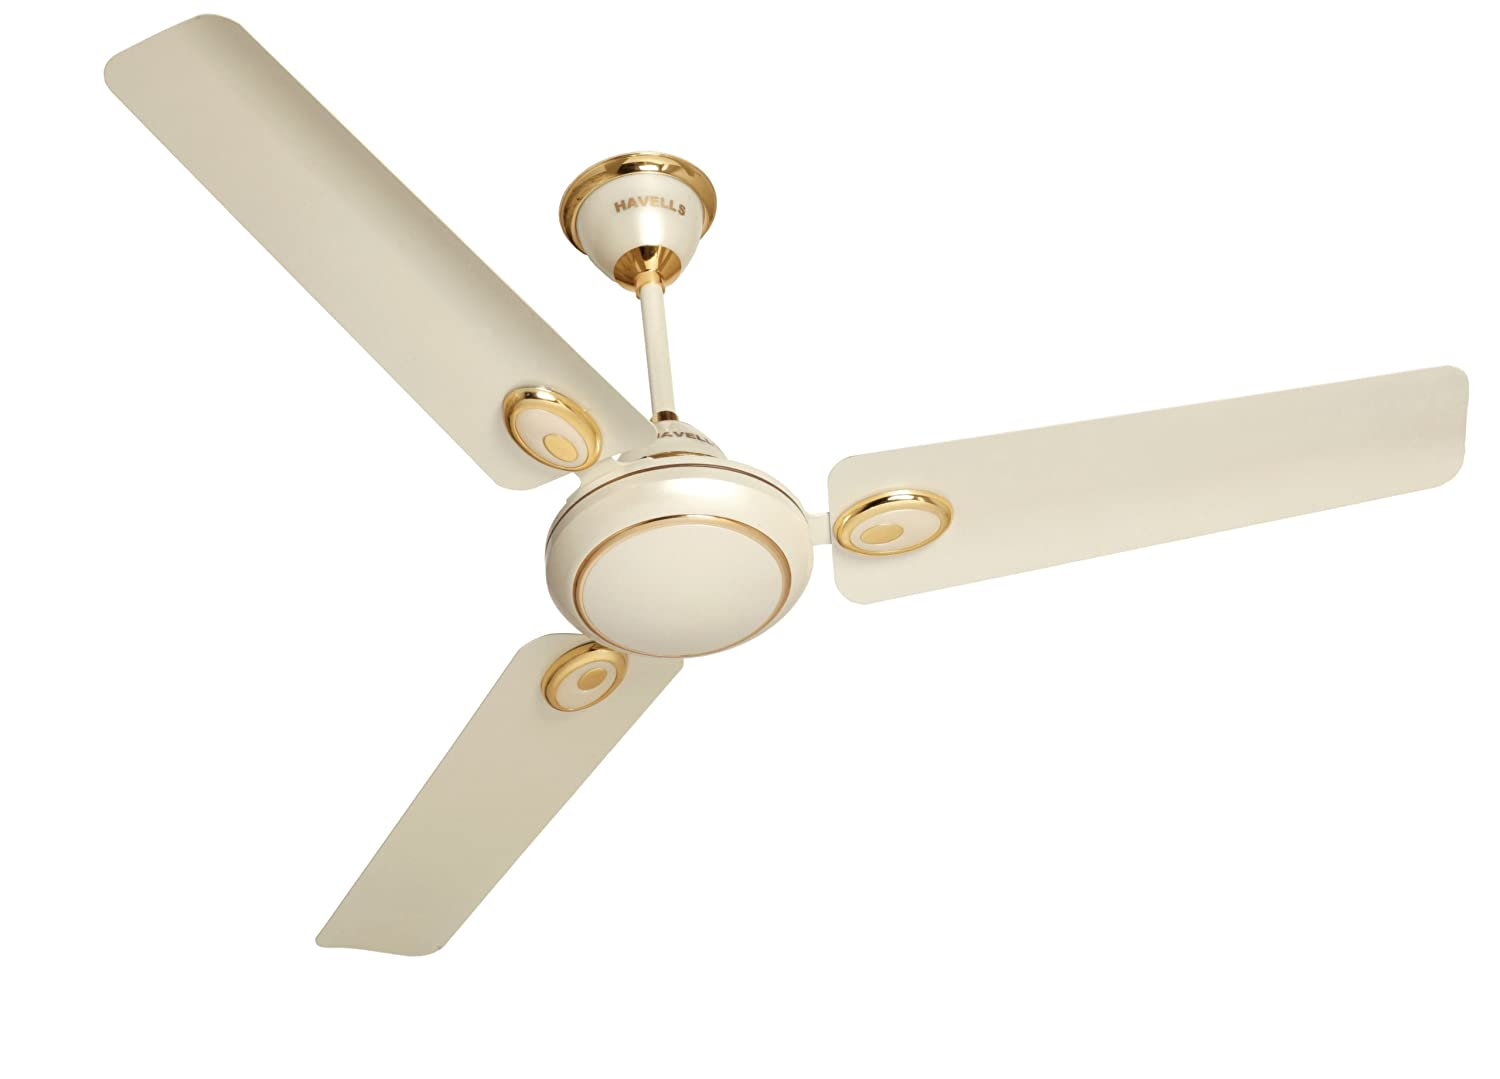 Buy havells fusion 1200mm ceiling fan pearl ivory online at low buy havells fusion 1200mm ceiling fan pearl ivory online at low prices in india amazon aloadofball Image collections